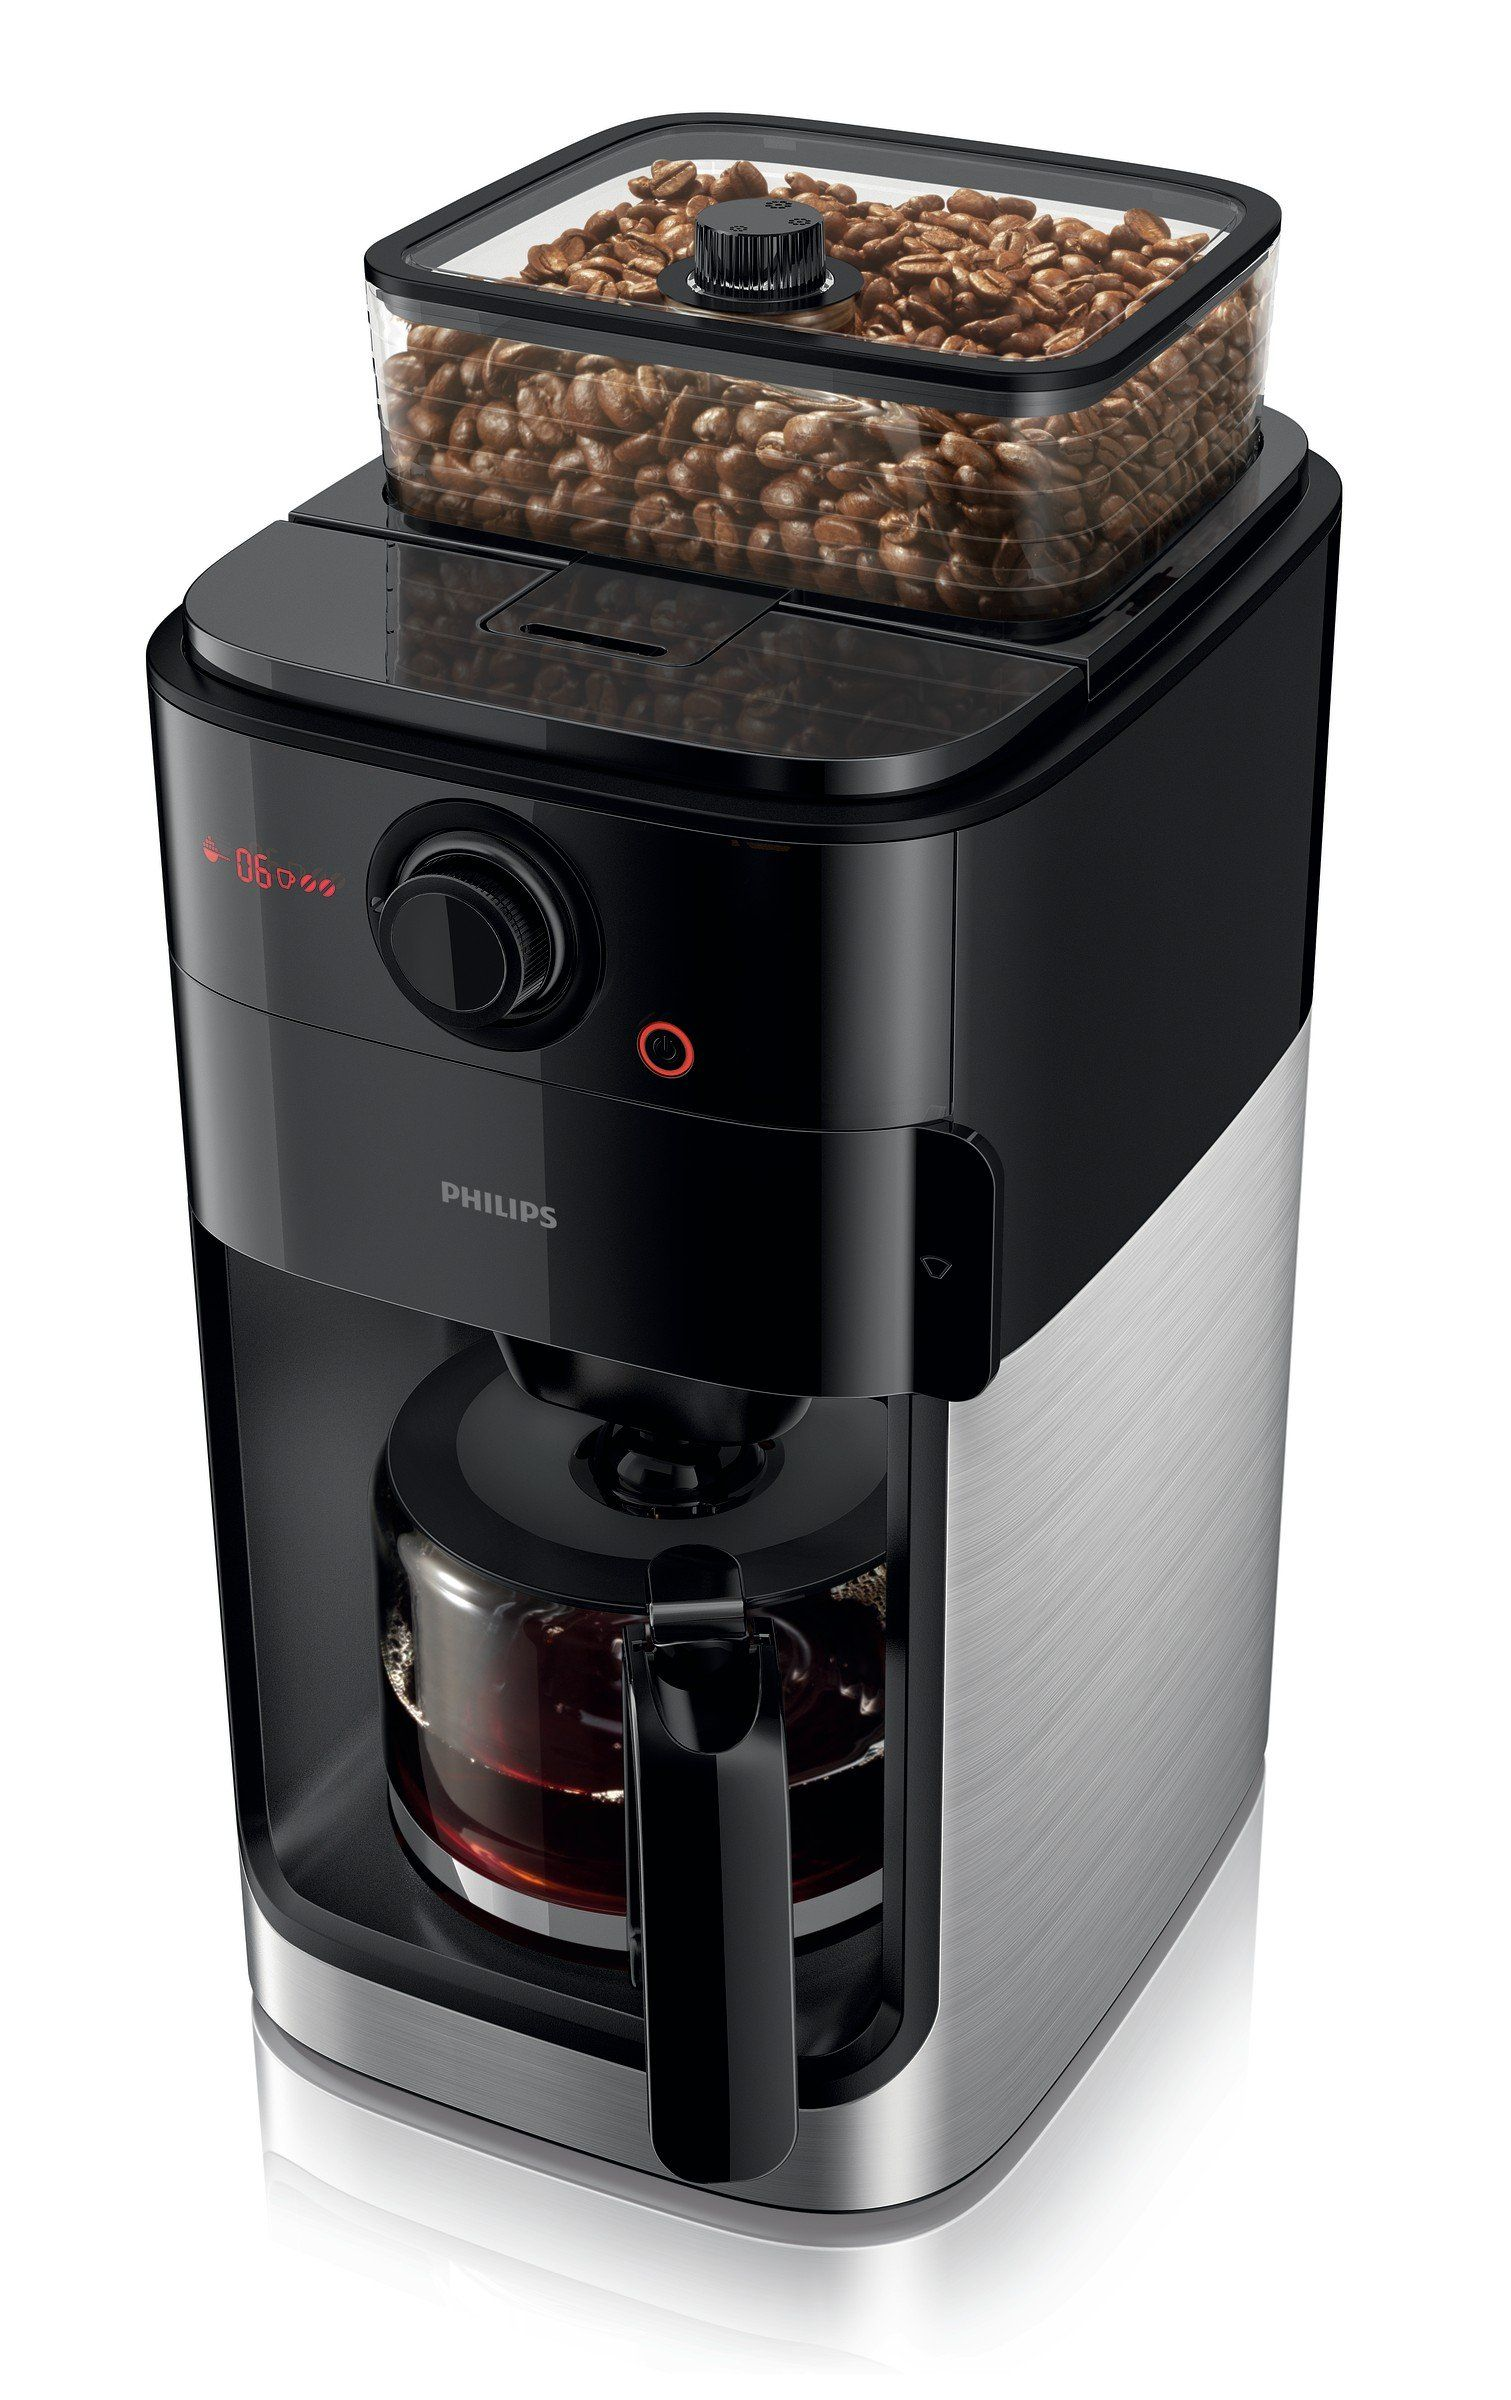 Philips Grind and Brew Coffee maker 220 Volt 60Hz C type